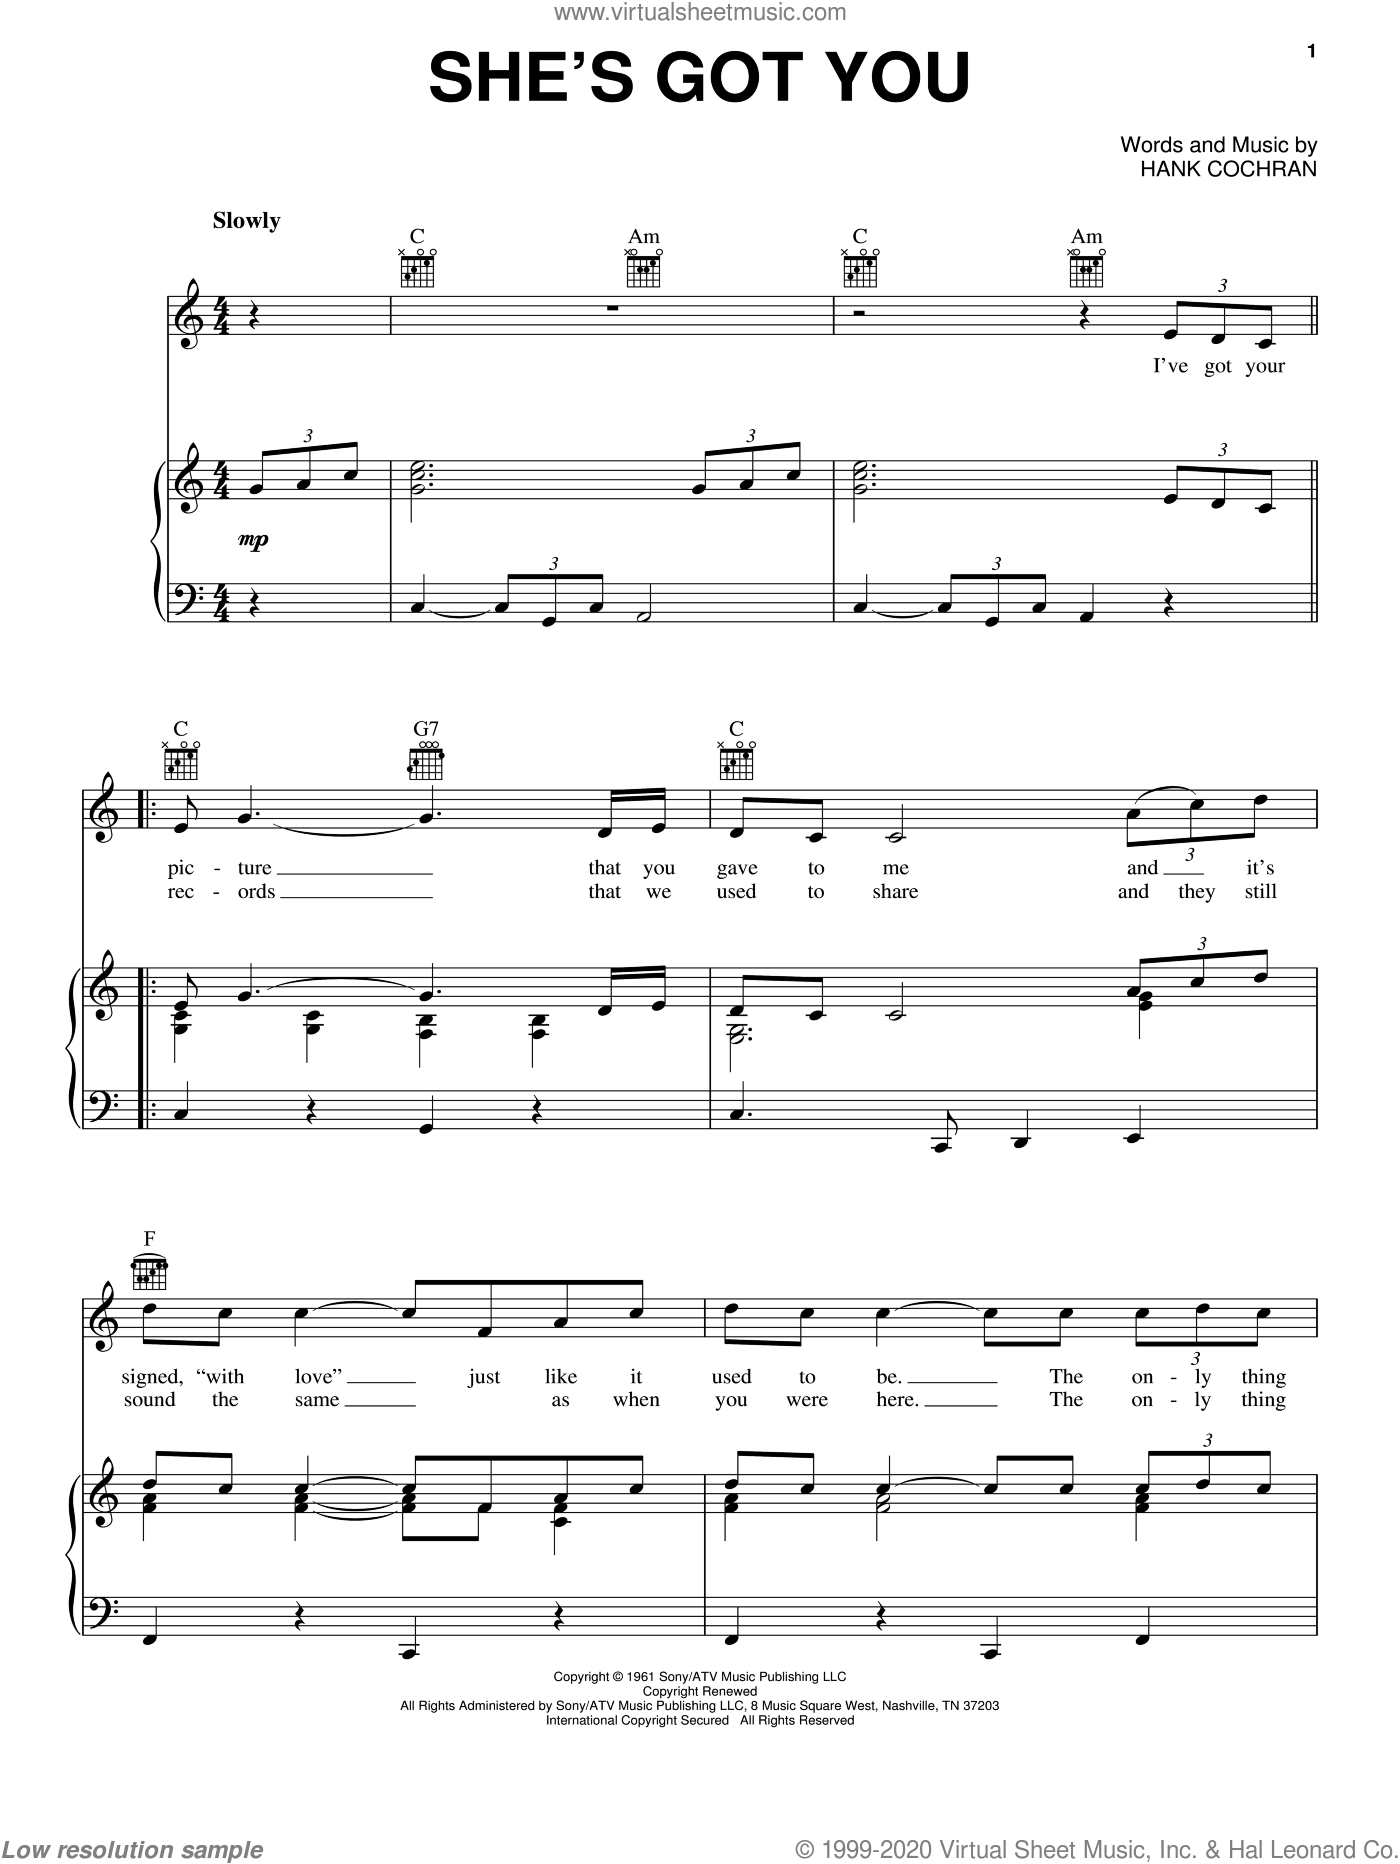 She's Got You sheet music for voice, piano or guitar by Hank Cochran